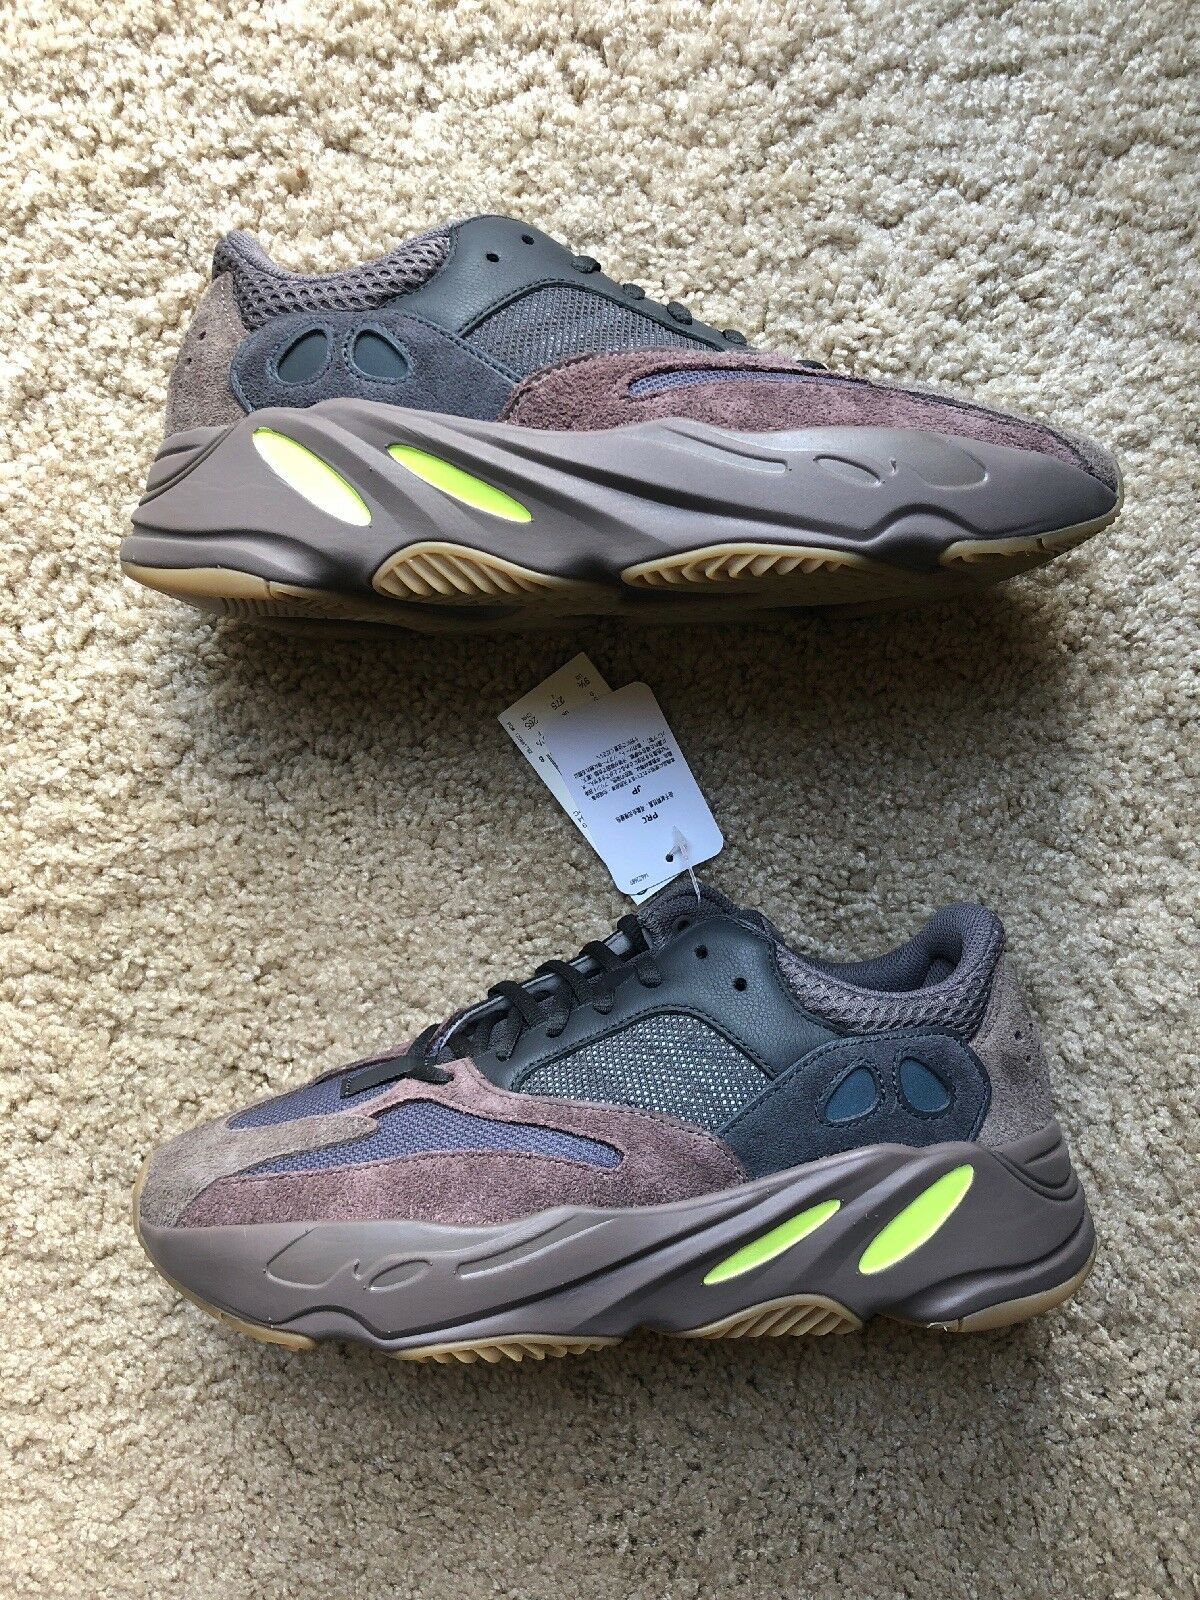 8b766f097 Adidas Yeezy 700 Mauve Size 9.5 US Mens - NEW IN BOX + FREE SHIPPING.  PHILIPPE MODEL MEN S SHOES SUEDE TRAINERS SNEAKERS ...